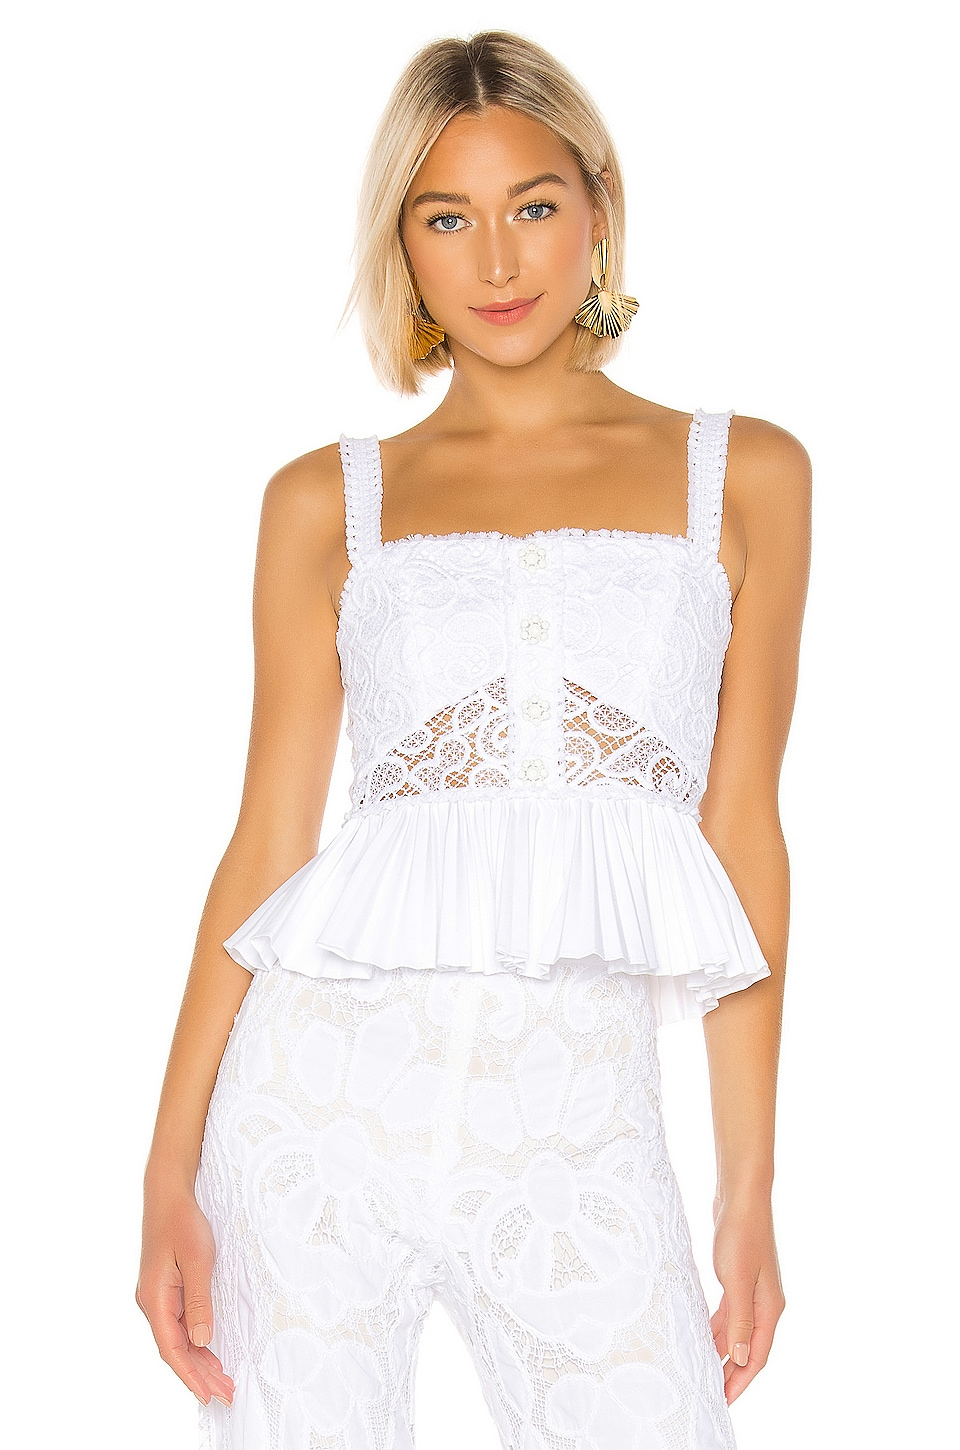 Alexis Azra Top in White